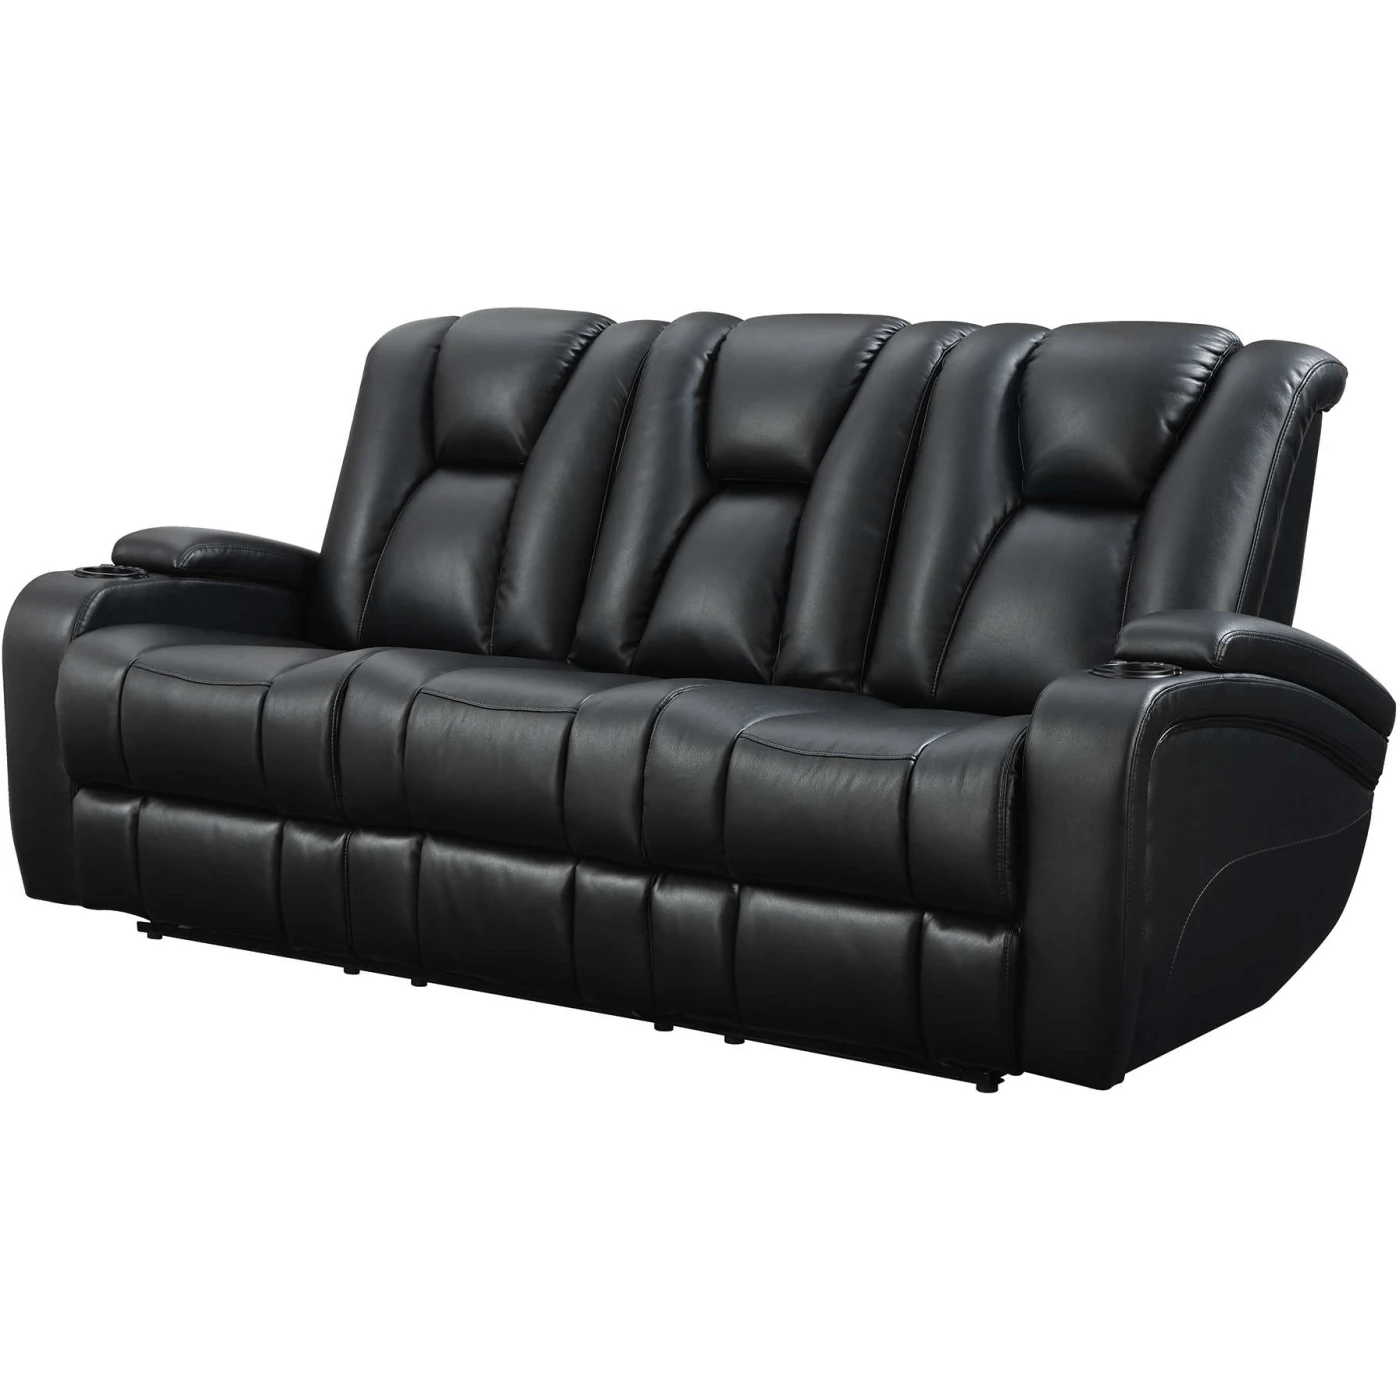 coaster futon sofa bed with removable armrests review vibe magazine delange black reclining power adjustable